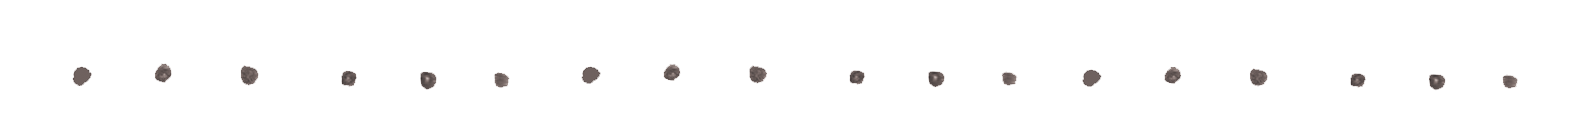 makerie dots.png